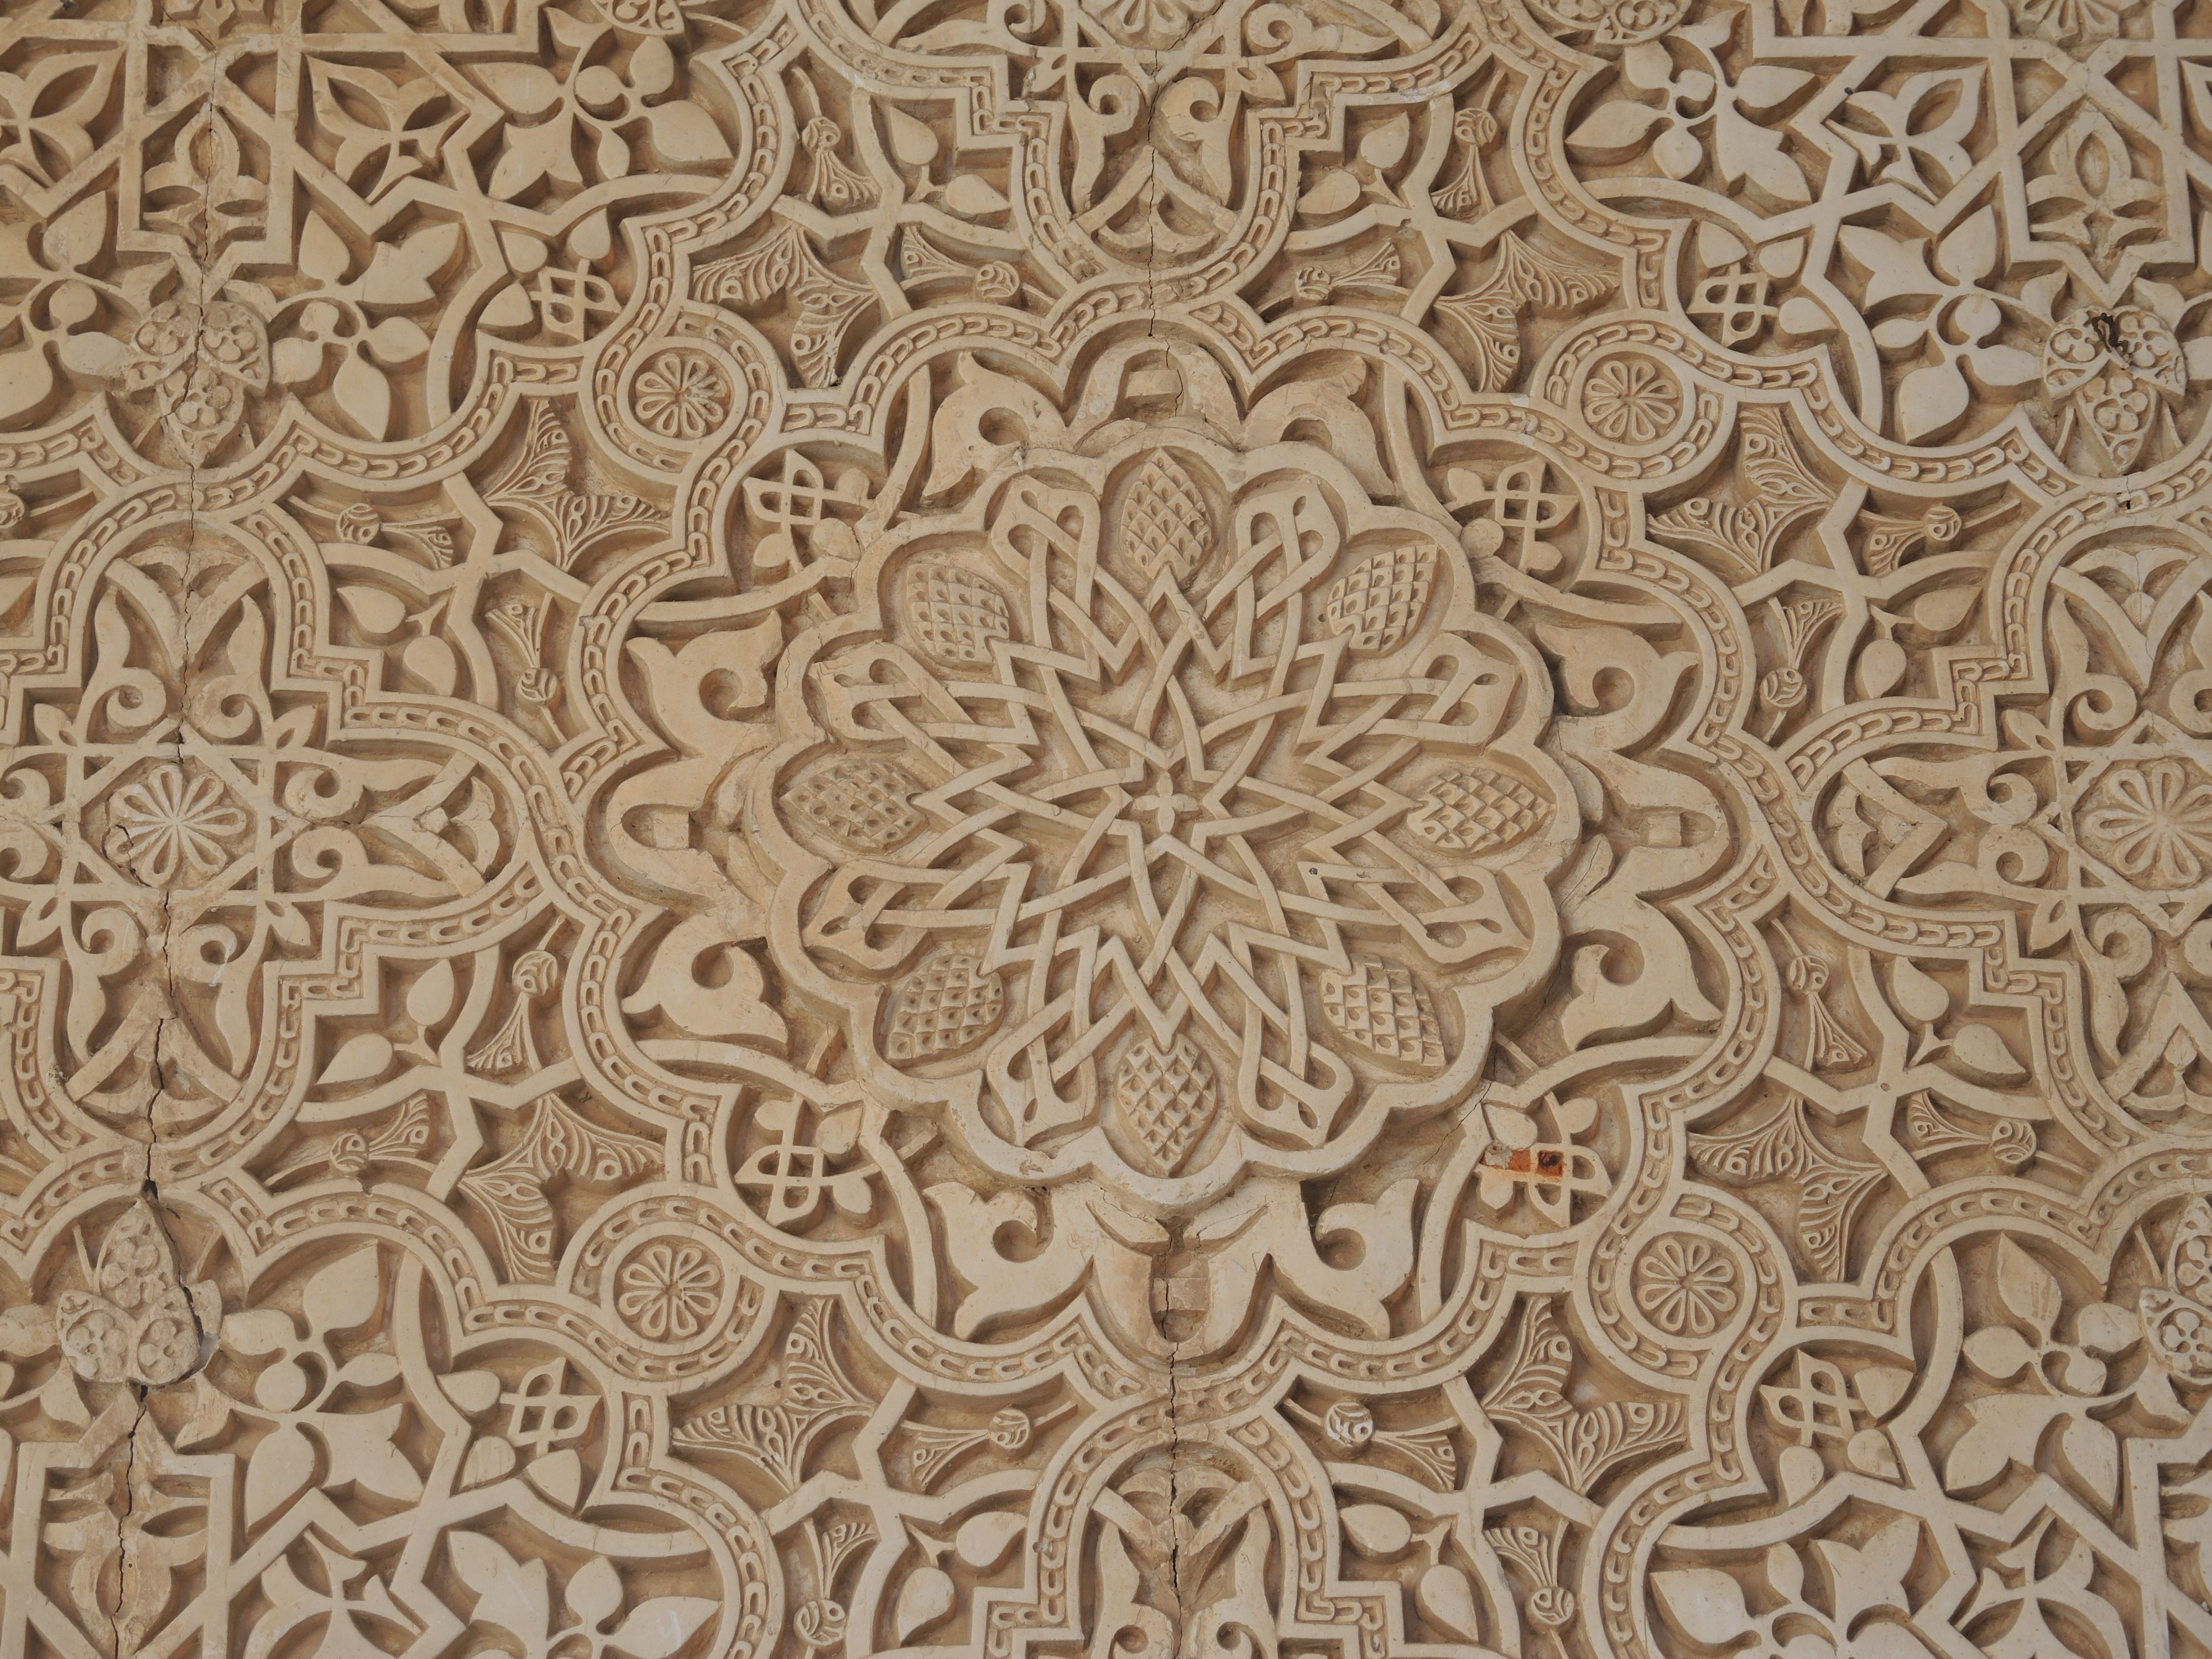 4000x3000 la Alhambra | islamic tiles | Pinterest | Islamic tiles